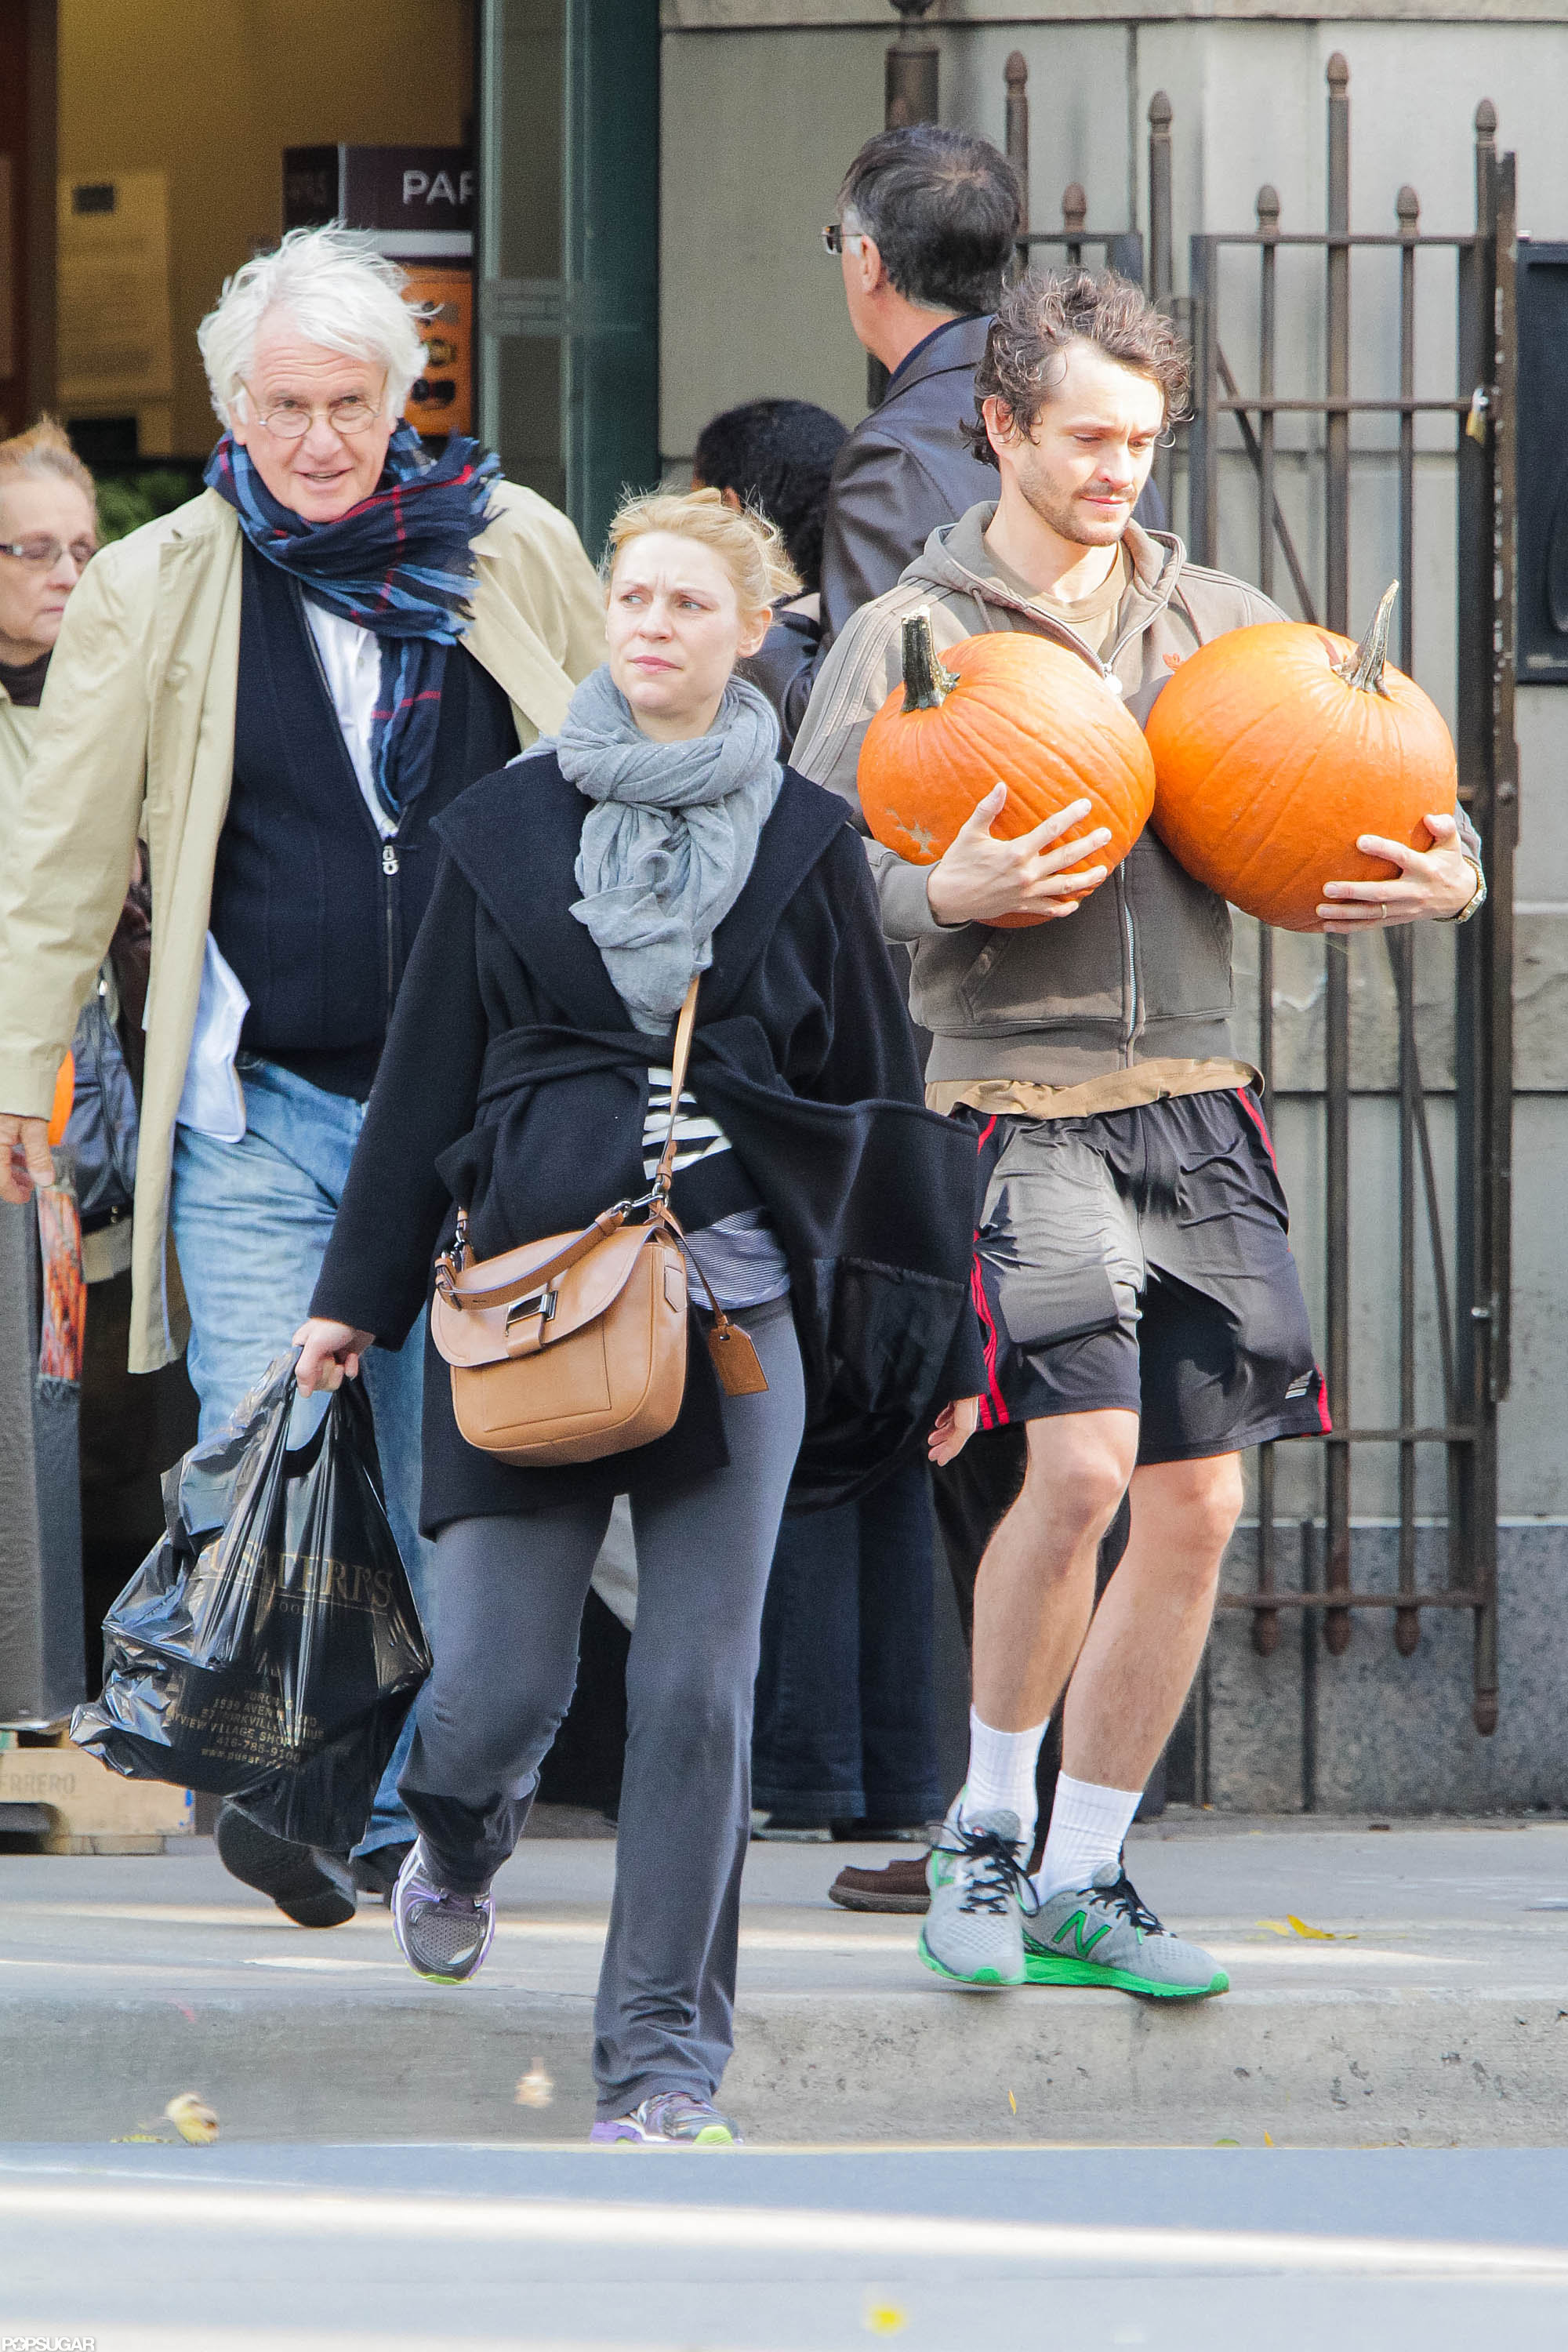 Pregnant Claire Danes and Hugh Dancy stopped for some pumpkins while in Toronto.